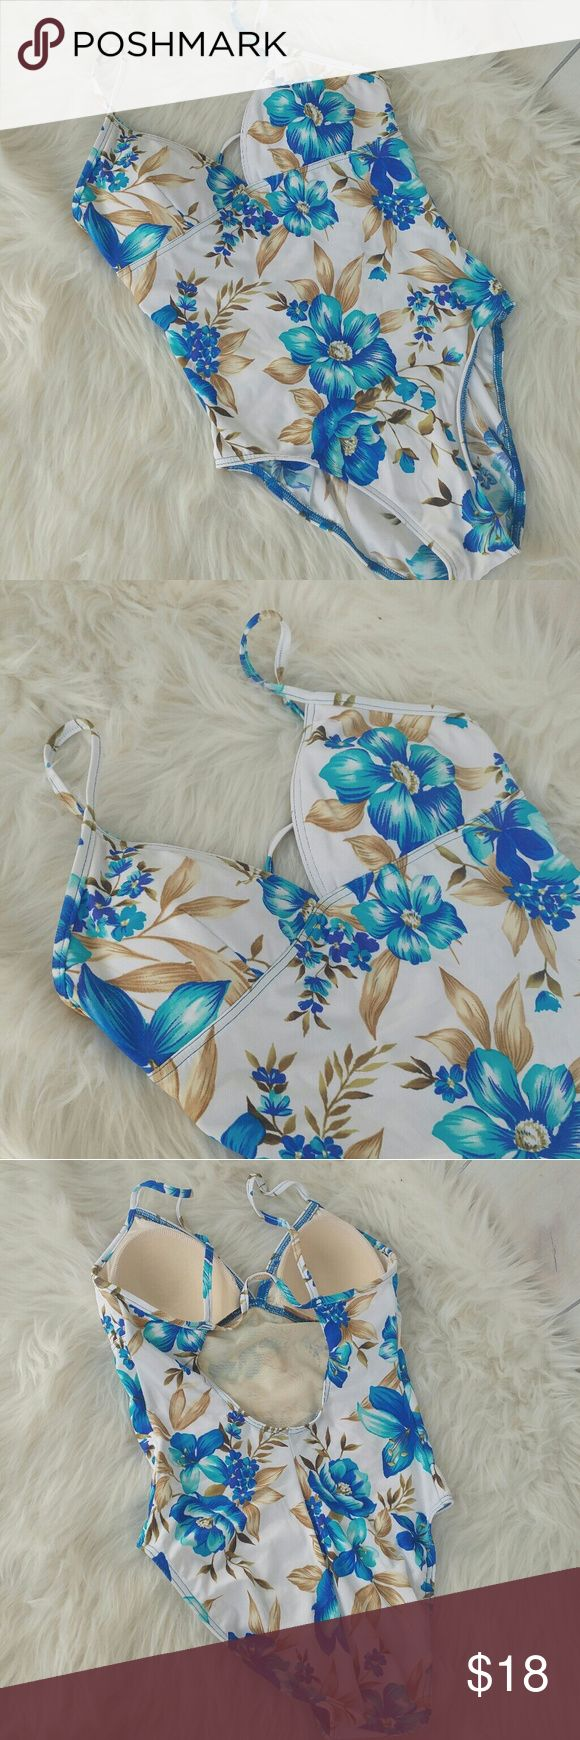 """Body I.D floral one piece swimsuit Excellent condition swimsuit by Body I.D Size 12  White with a blue floral print Light pads on bust no underwire   Pit to pit 15.5"""" Length 27"""" Body I.D. Swim One Pieces"""